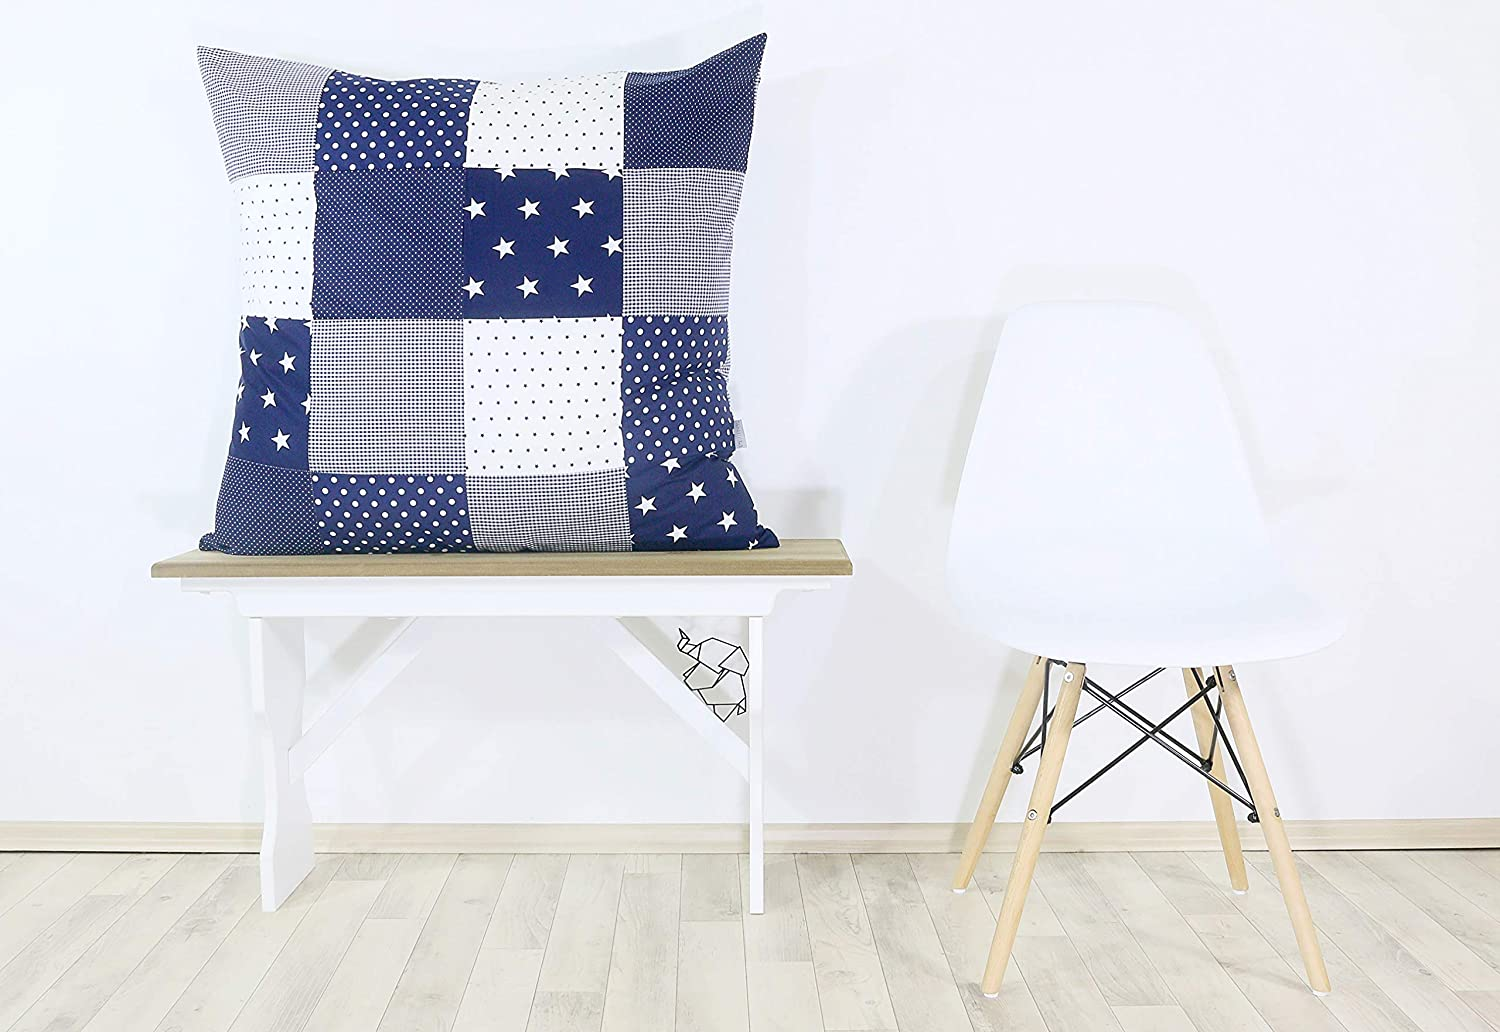 Blue Green Elephants 80 x 80 cm can Also be Used on pram Blankets or Decorative Cushions; Motifs: Anchors, Stars ULLENBOOM//® Baby Quilt Cover